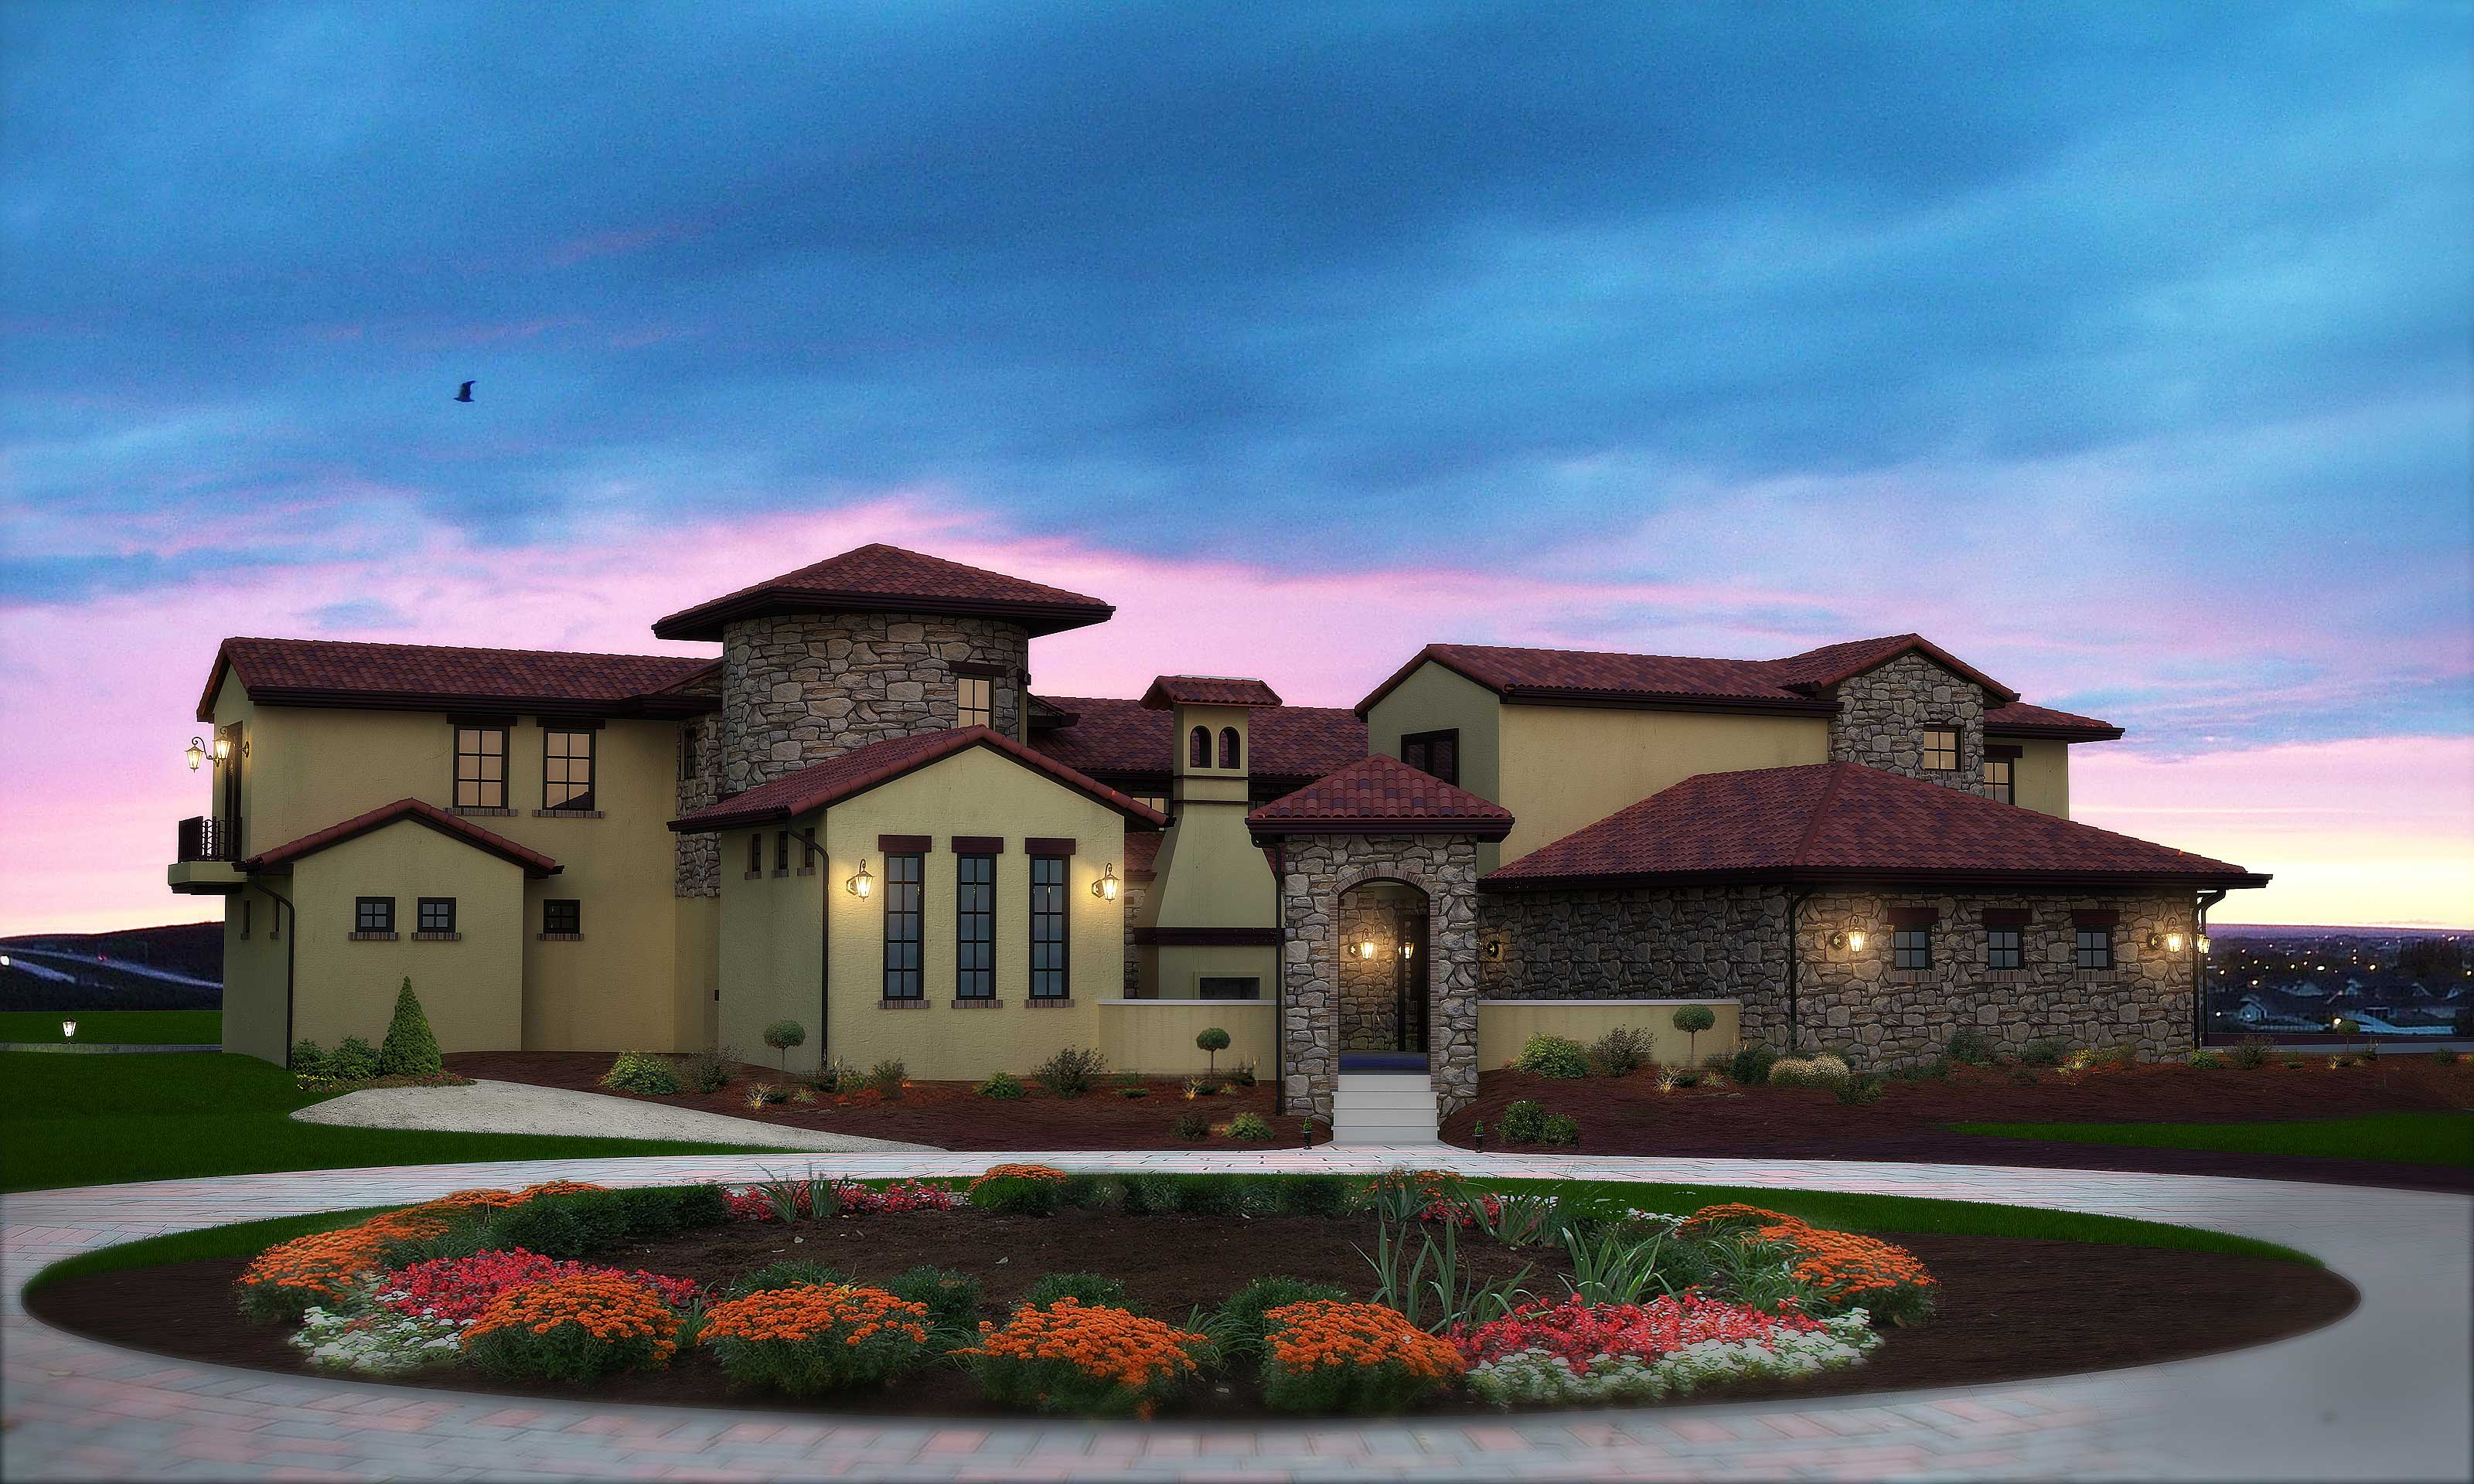 Mediterranean home plan 6 bedrms 5 5 baths 7521 sq ft for Tuscan home plans